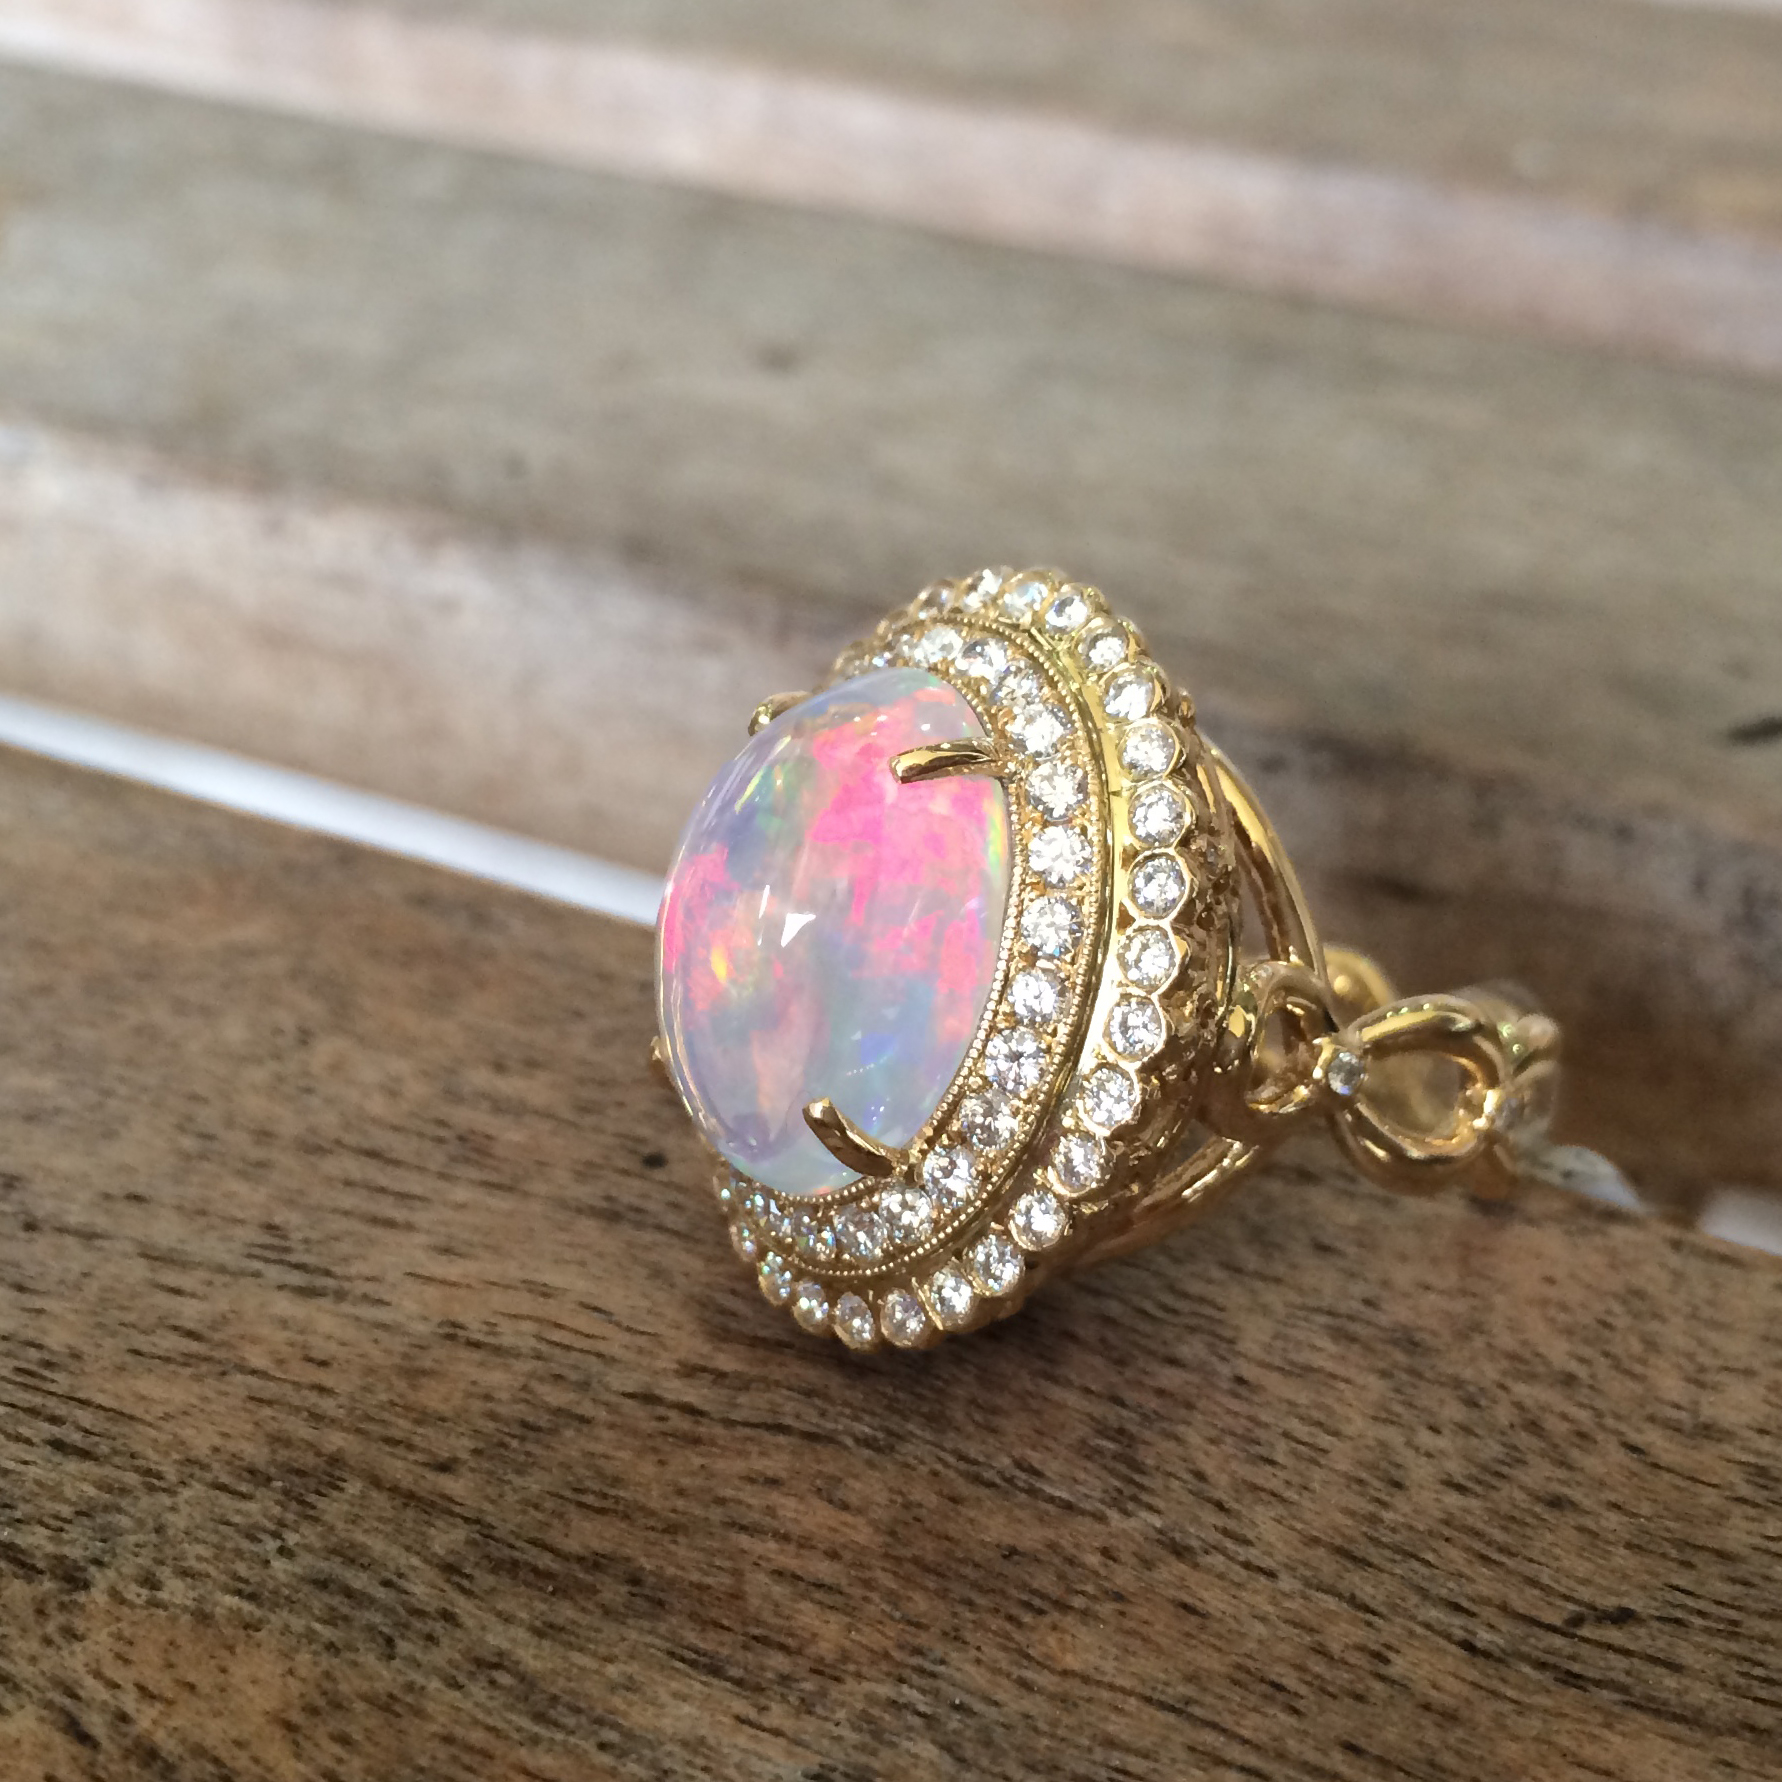 jewellery old mexican ksvhs boulder silver adjustable sterling beautiful jewelry opal engagement fire and rings yellow citrine ring